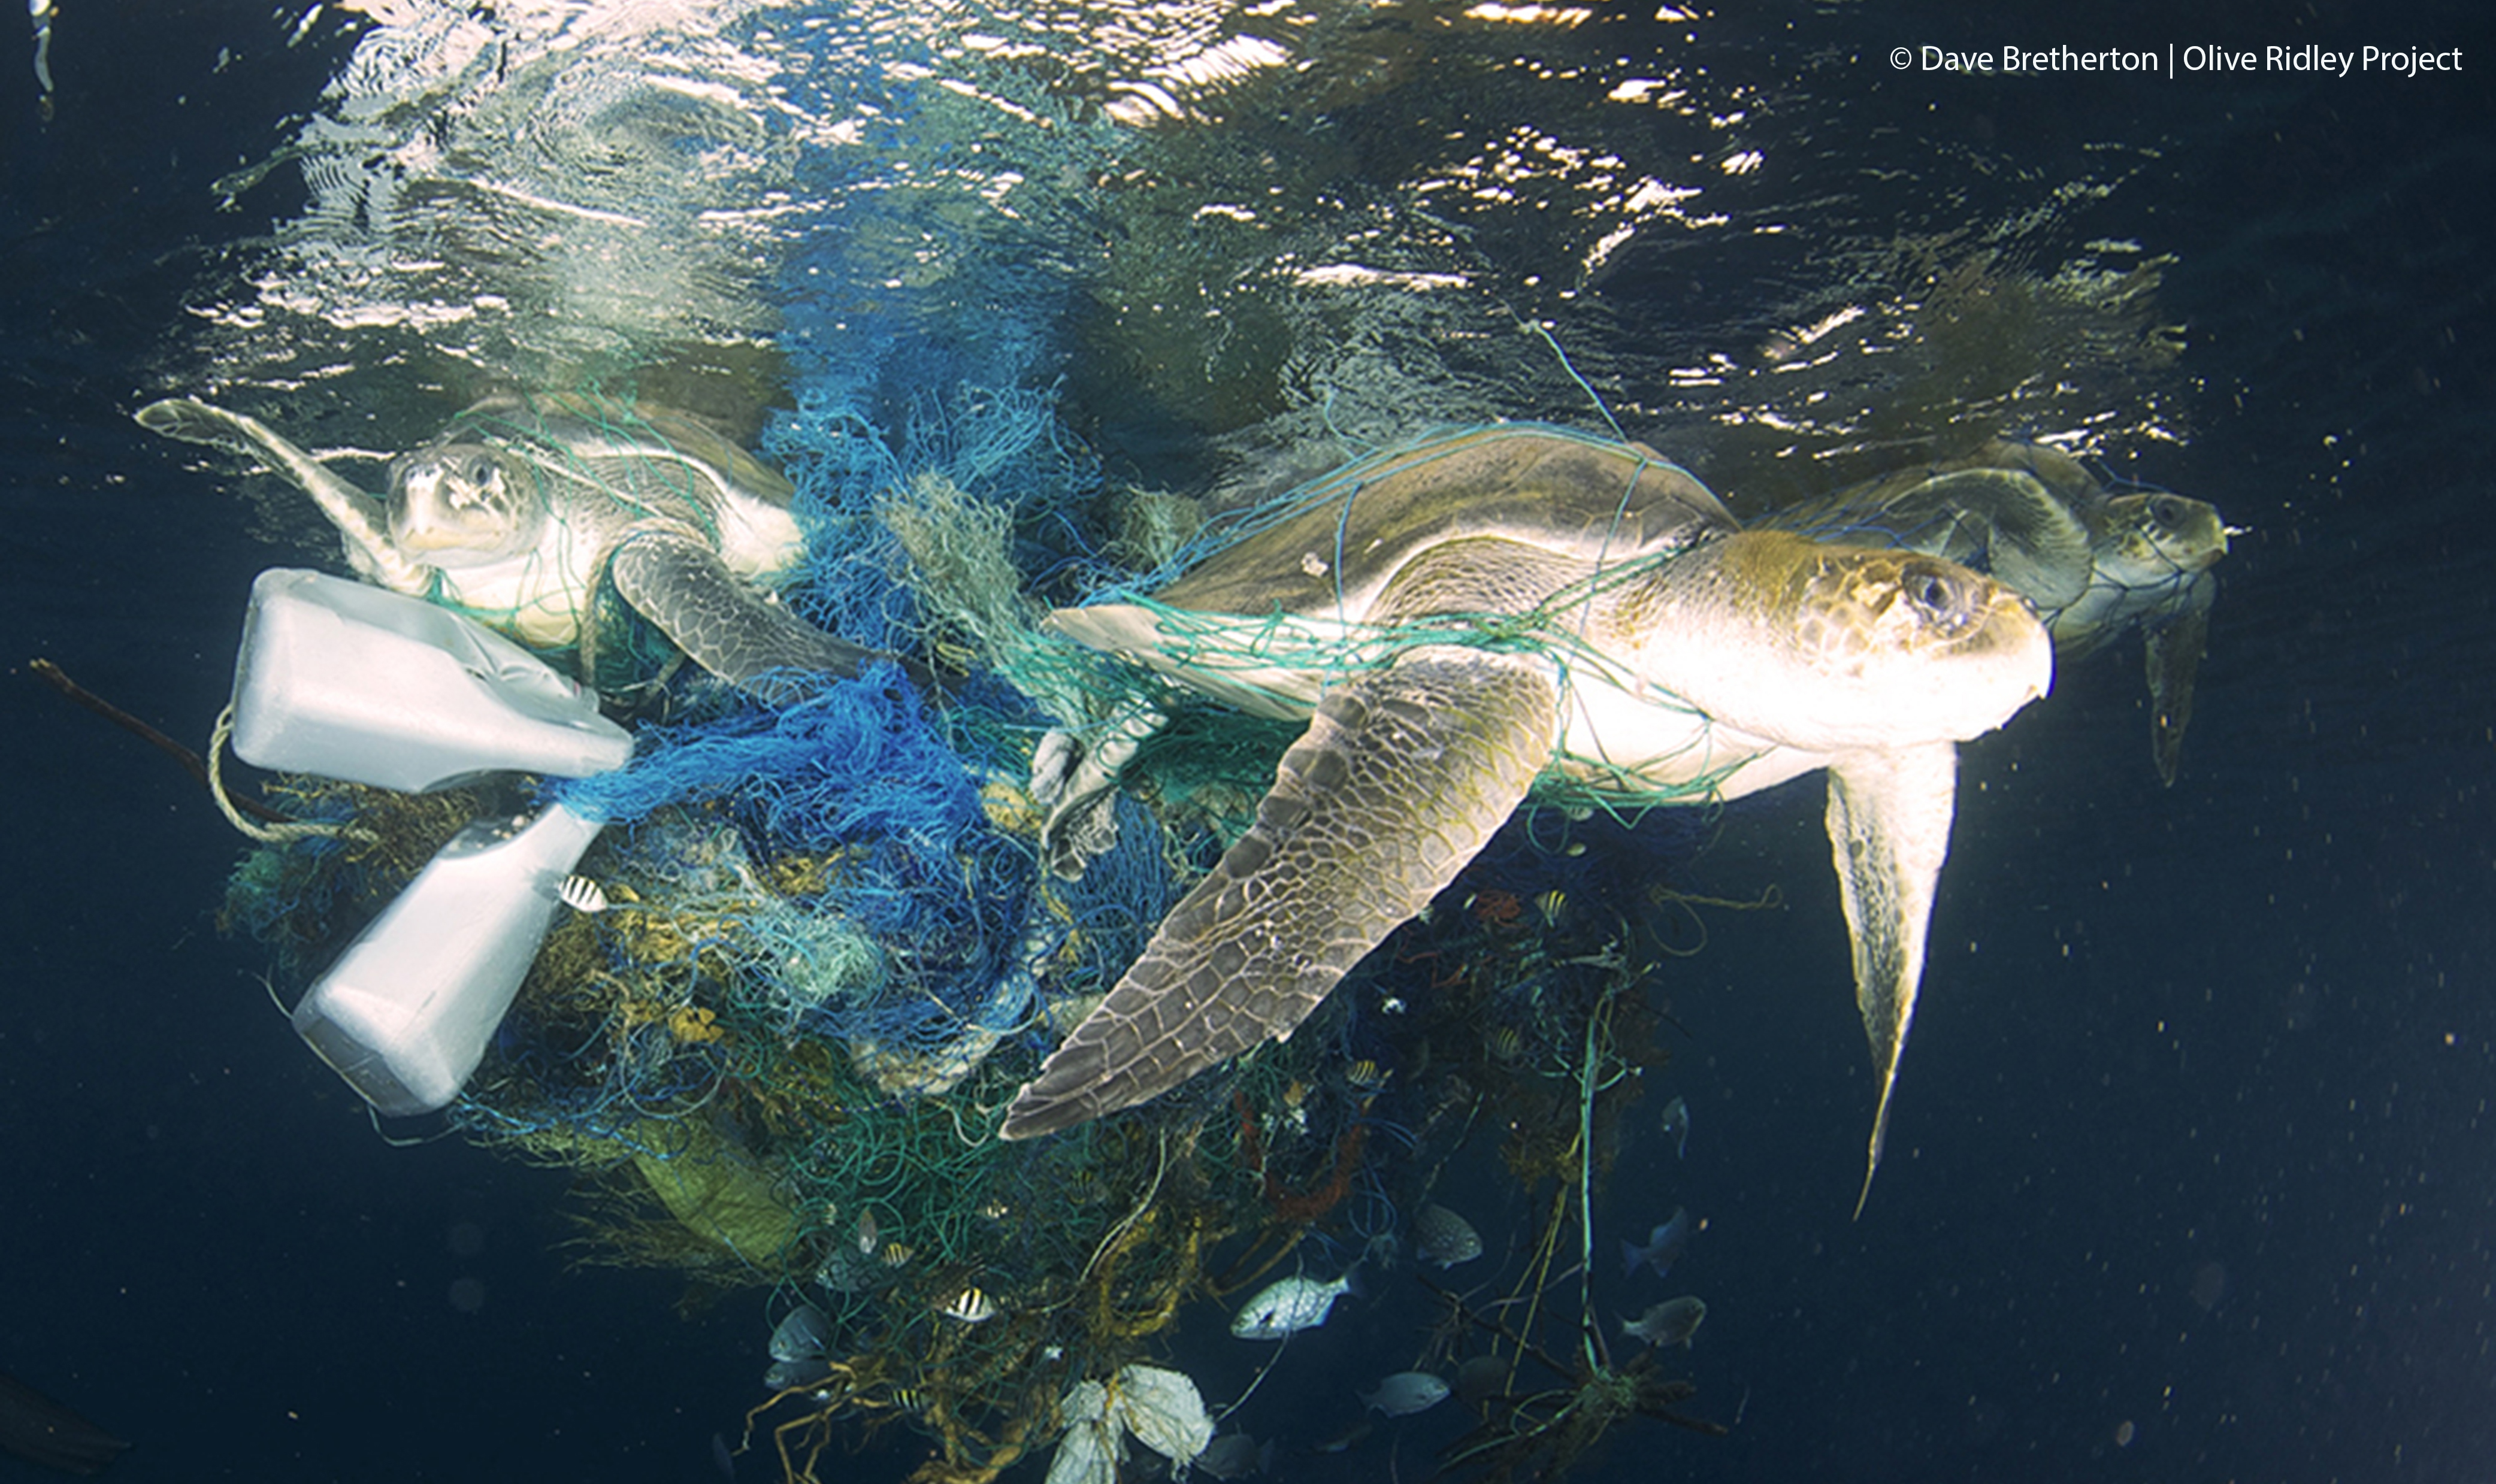 Three olive ridleys found entangled in a ghost net in the Maldives. (c) Dave Bretherton